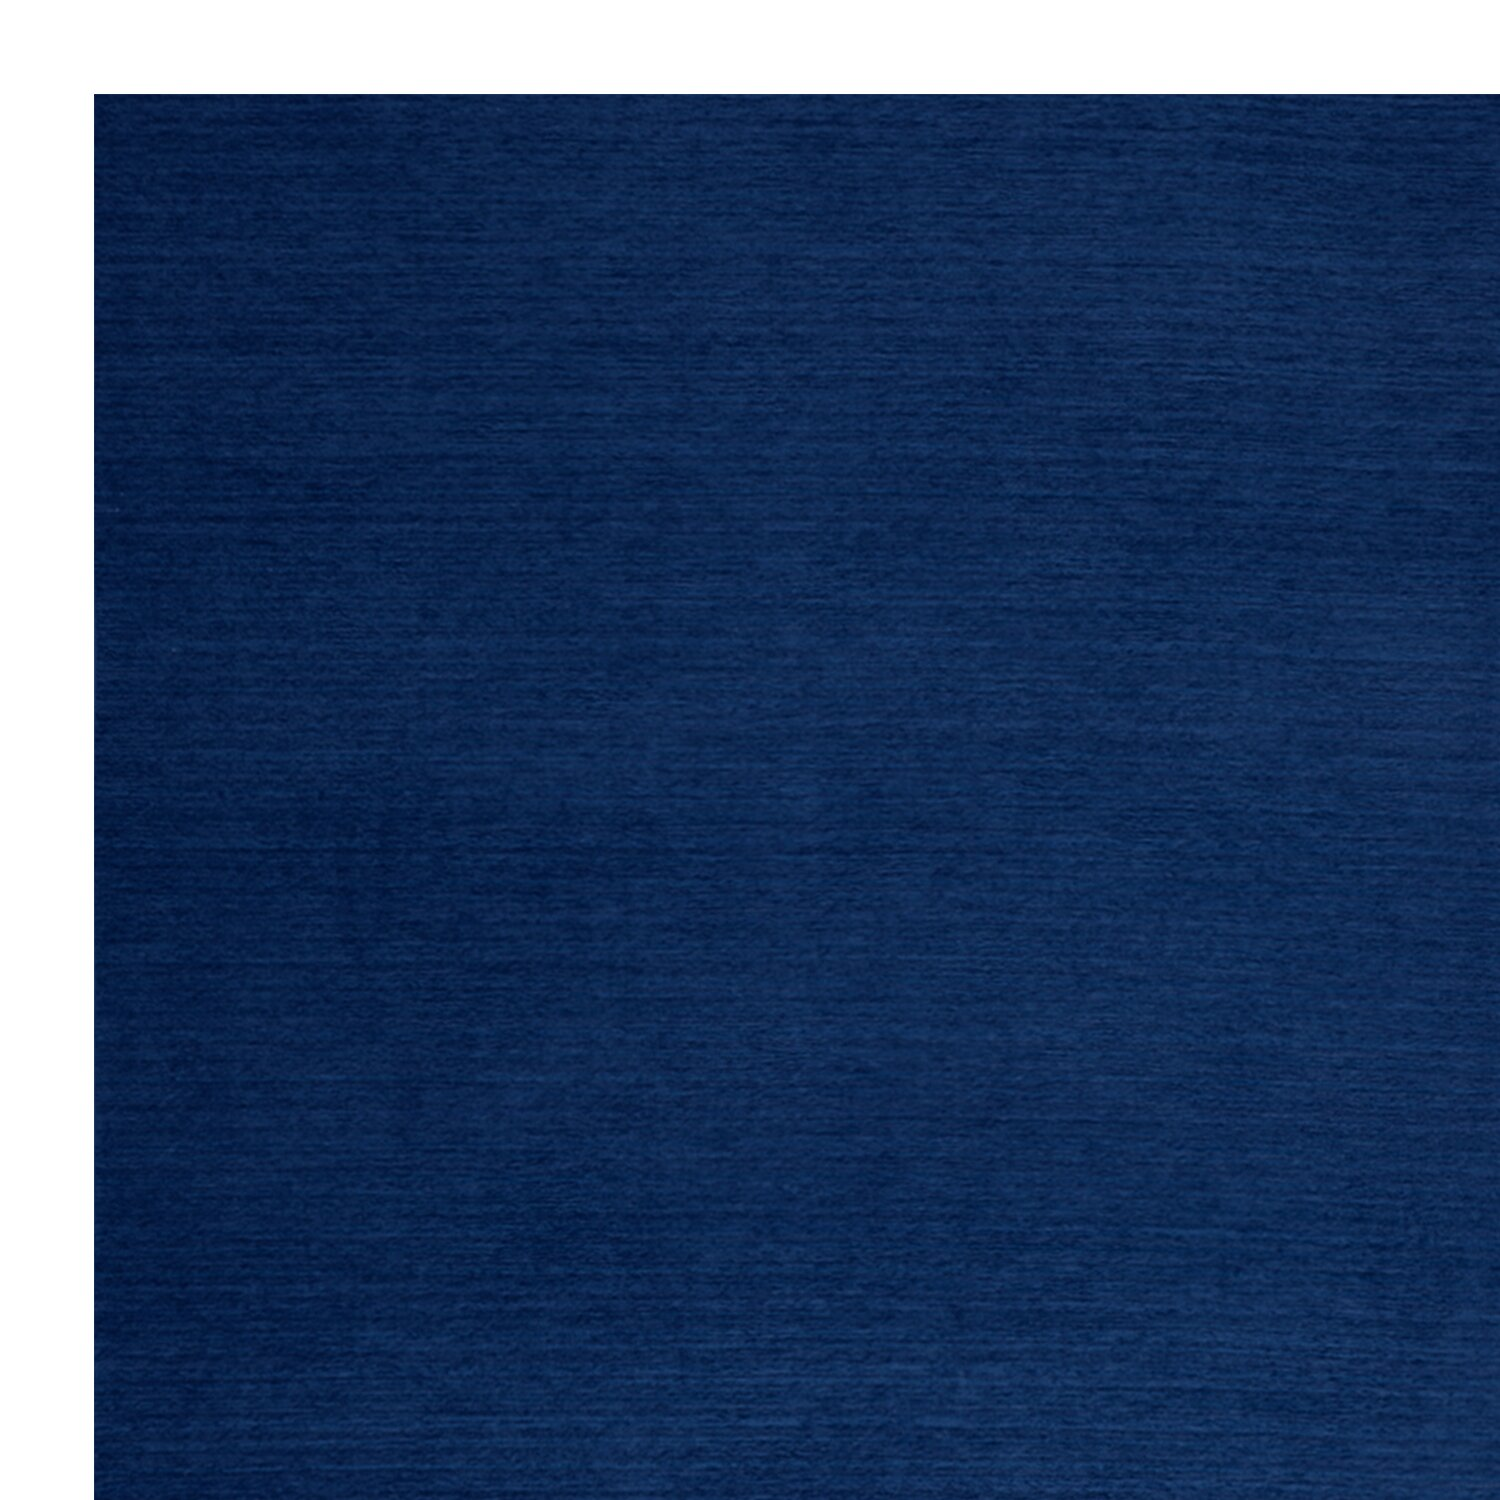 Ruggable Flat Woven Navy Blue Indoor Outdoor Area rug